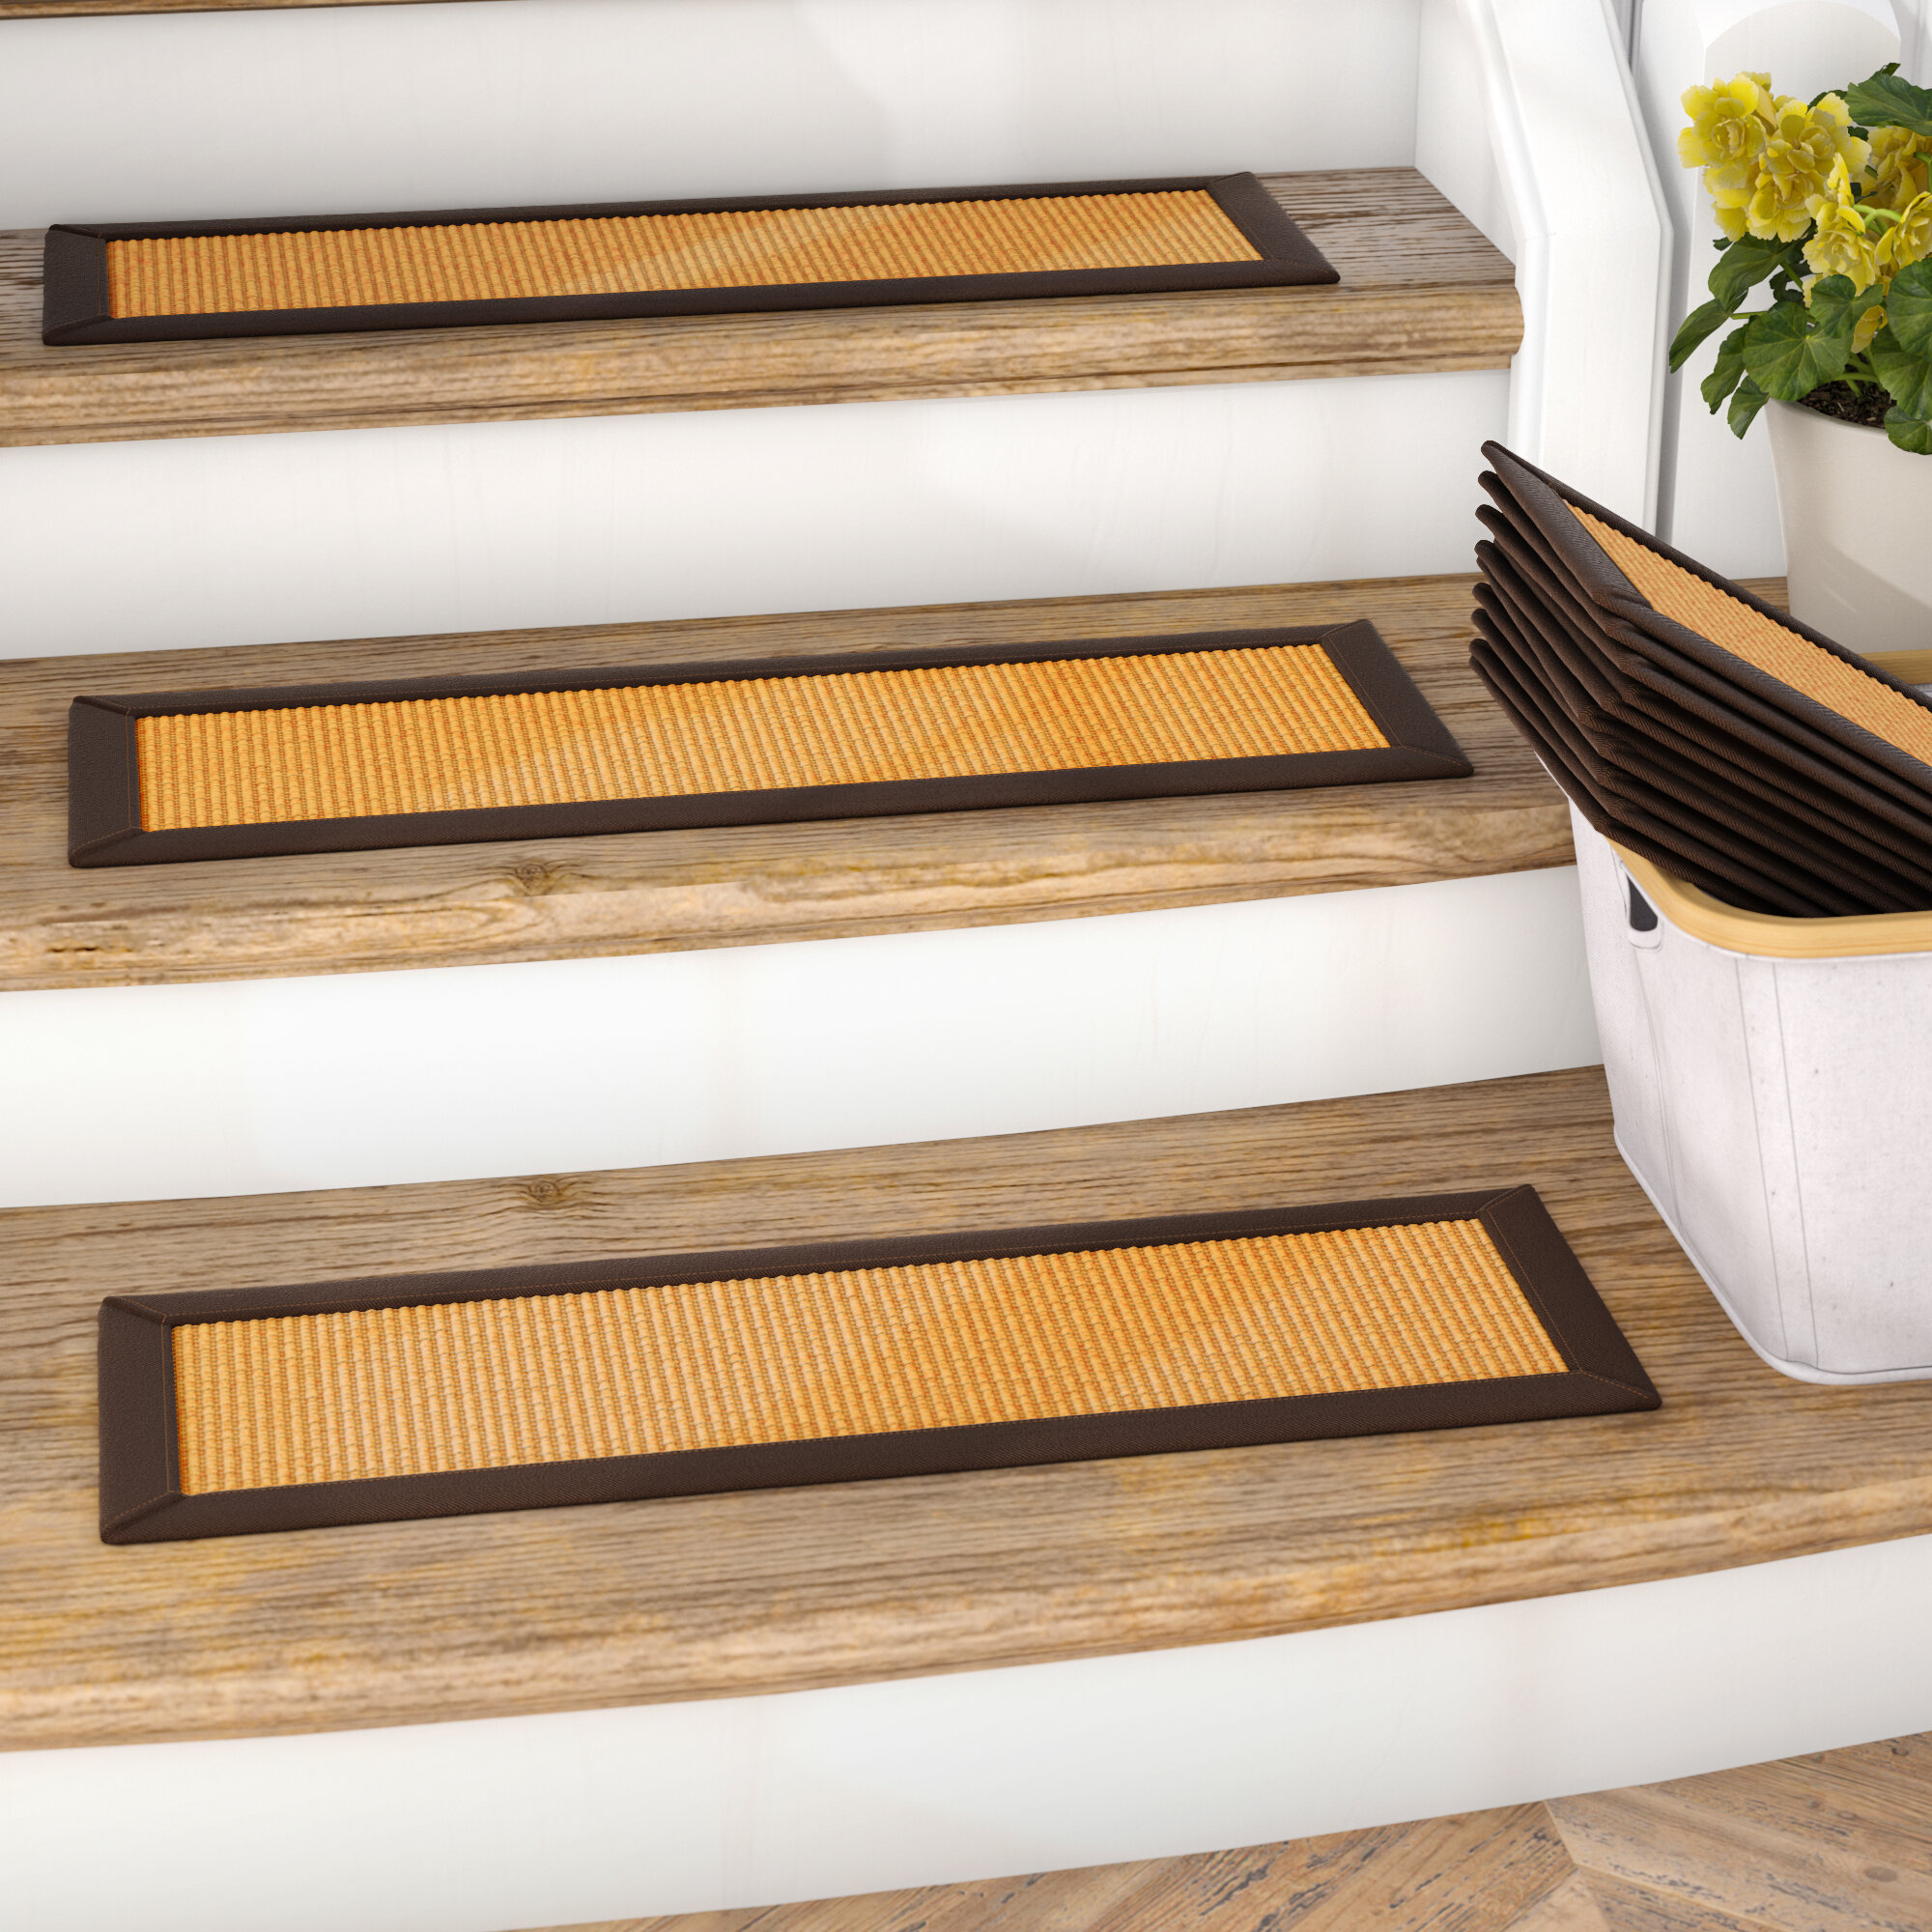 stair furniture pin criss online jewelry shopping electronics overstock rubber bedding iron mat cross com clothing wrought multi mats matswrought doormat more